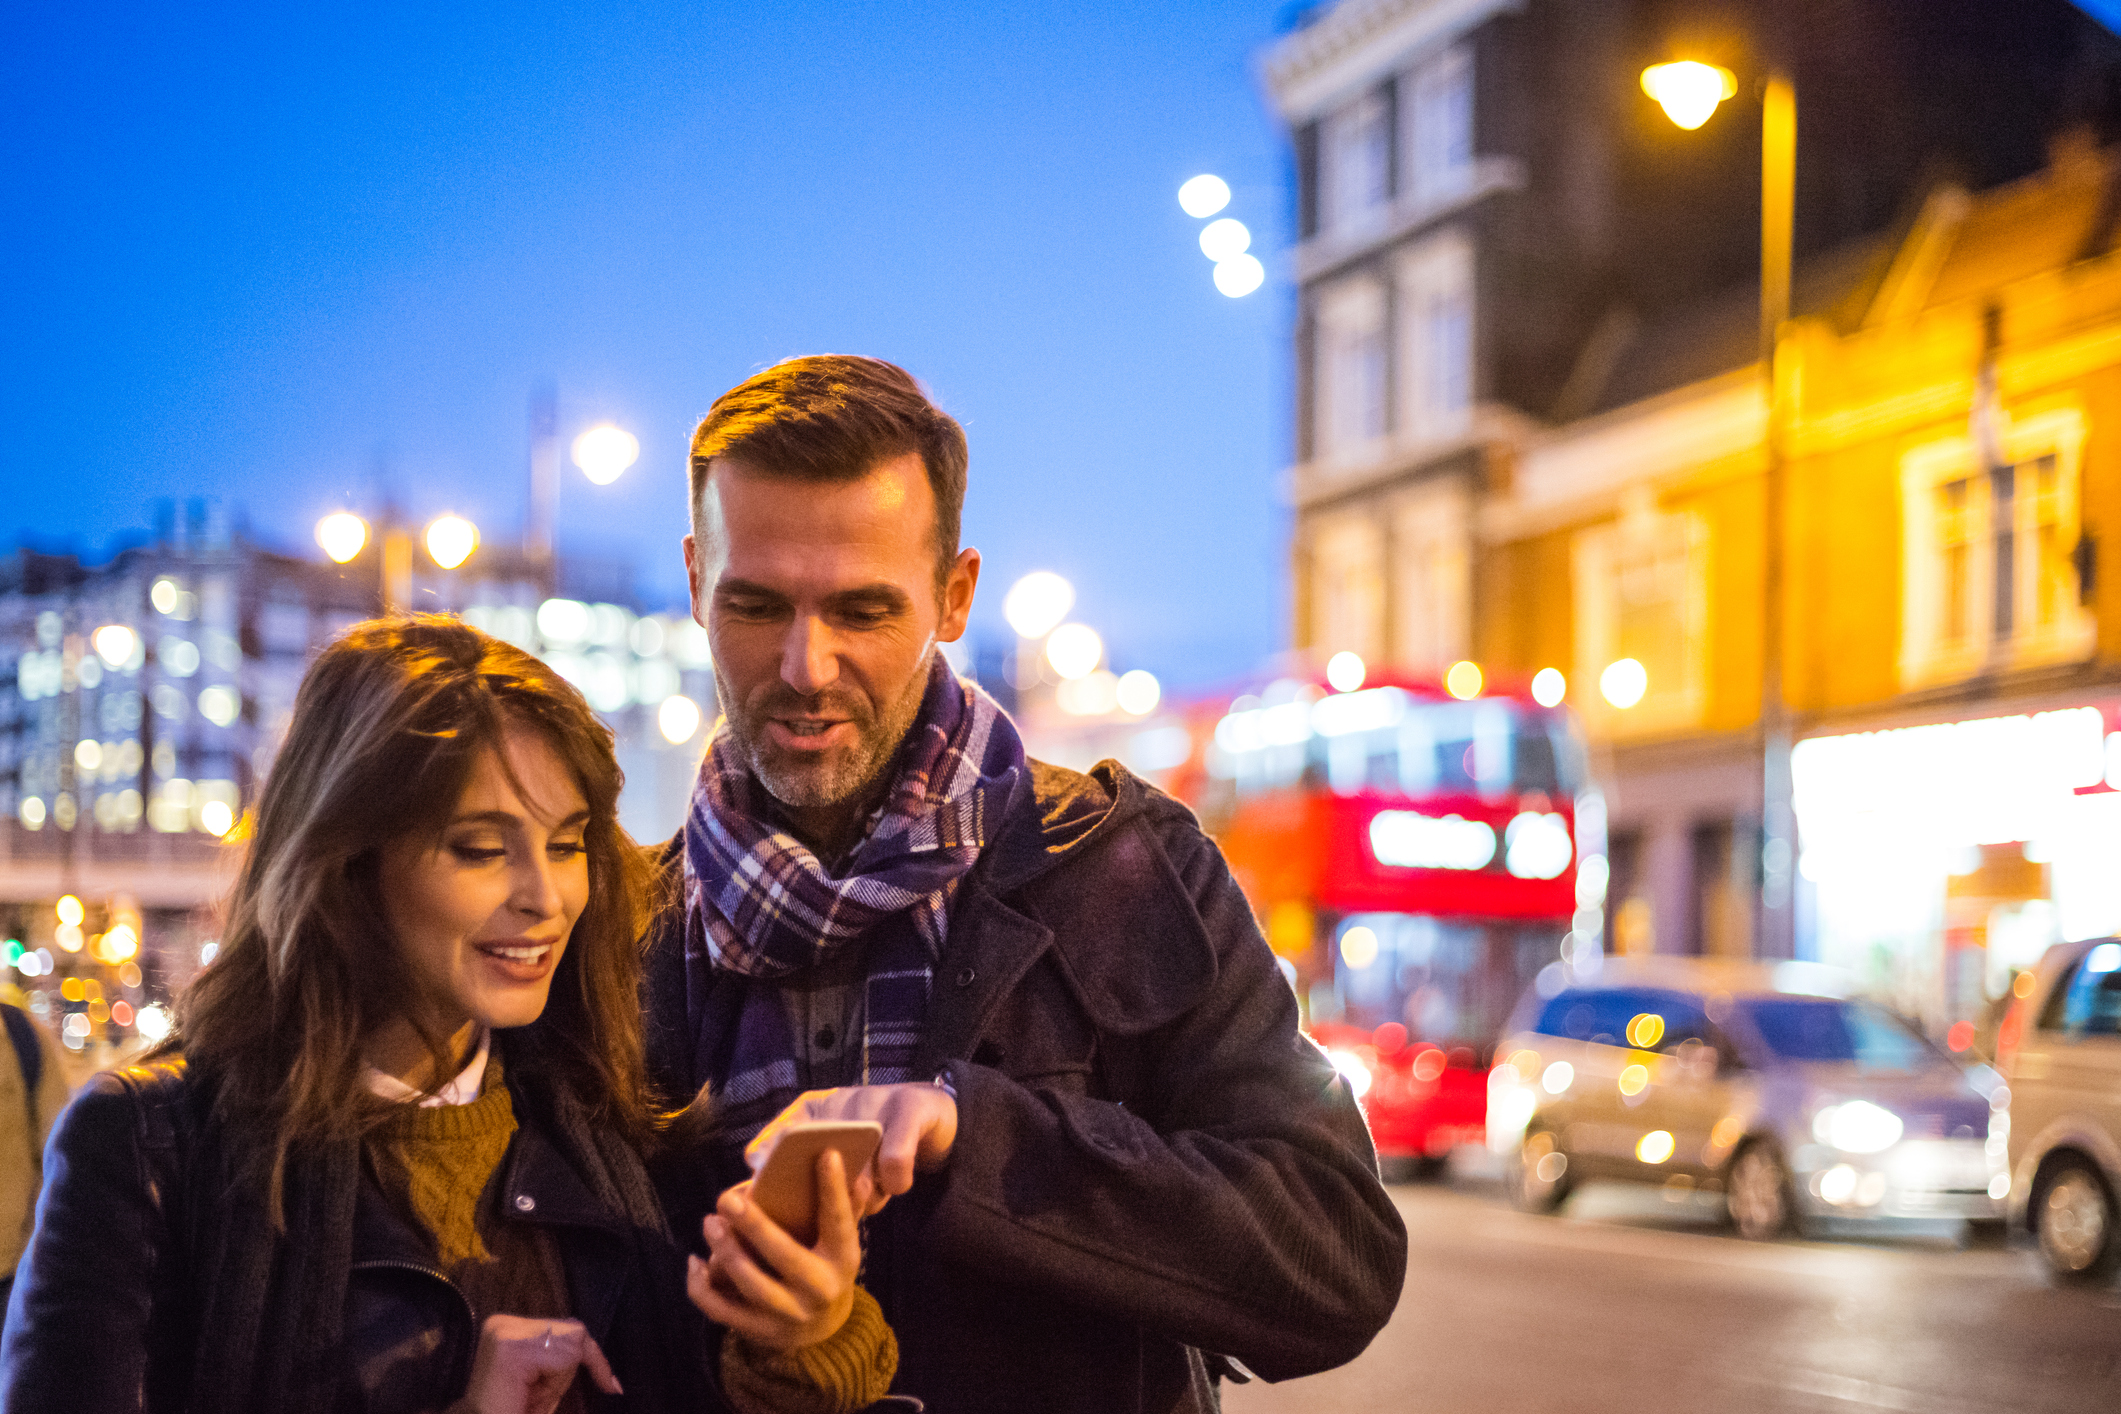 A couple enjoying a night out in London knowing their car is safely parked with Official Gatwick Airport Parking